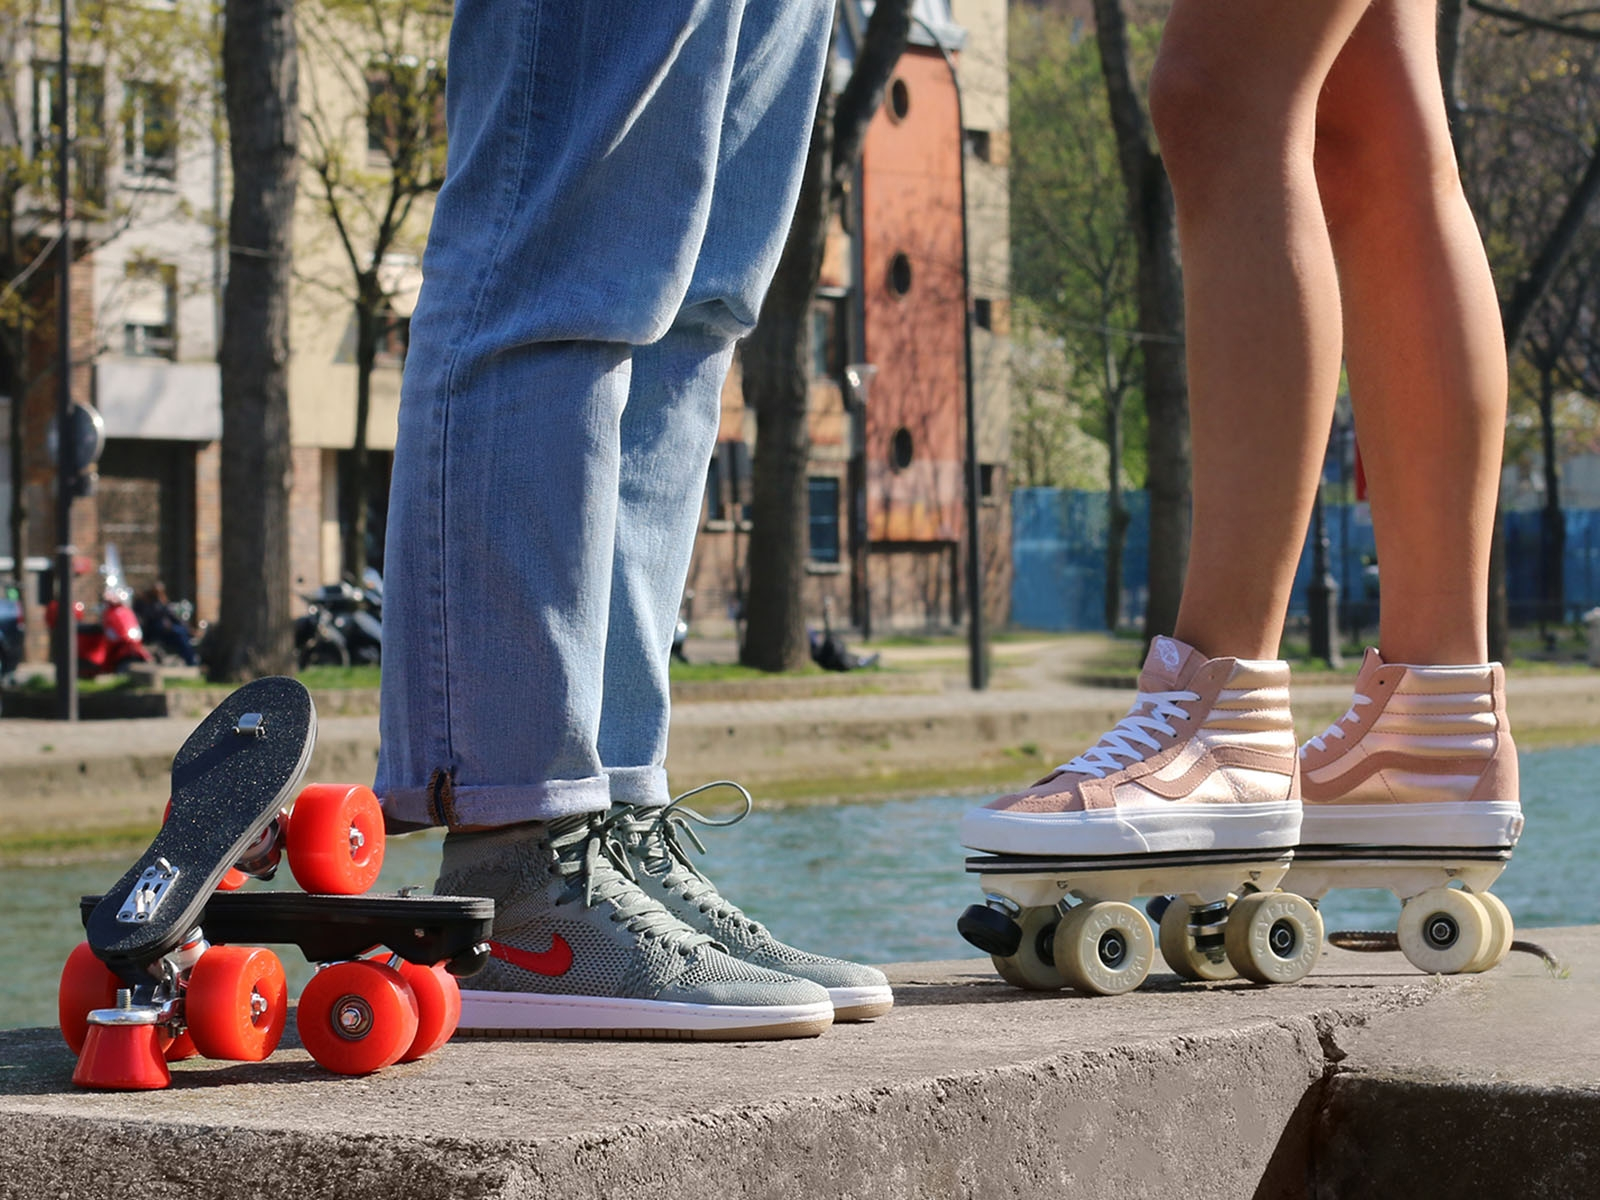 Start rollerskating: tips and advice